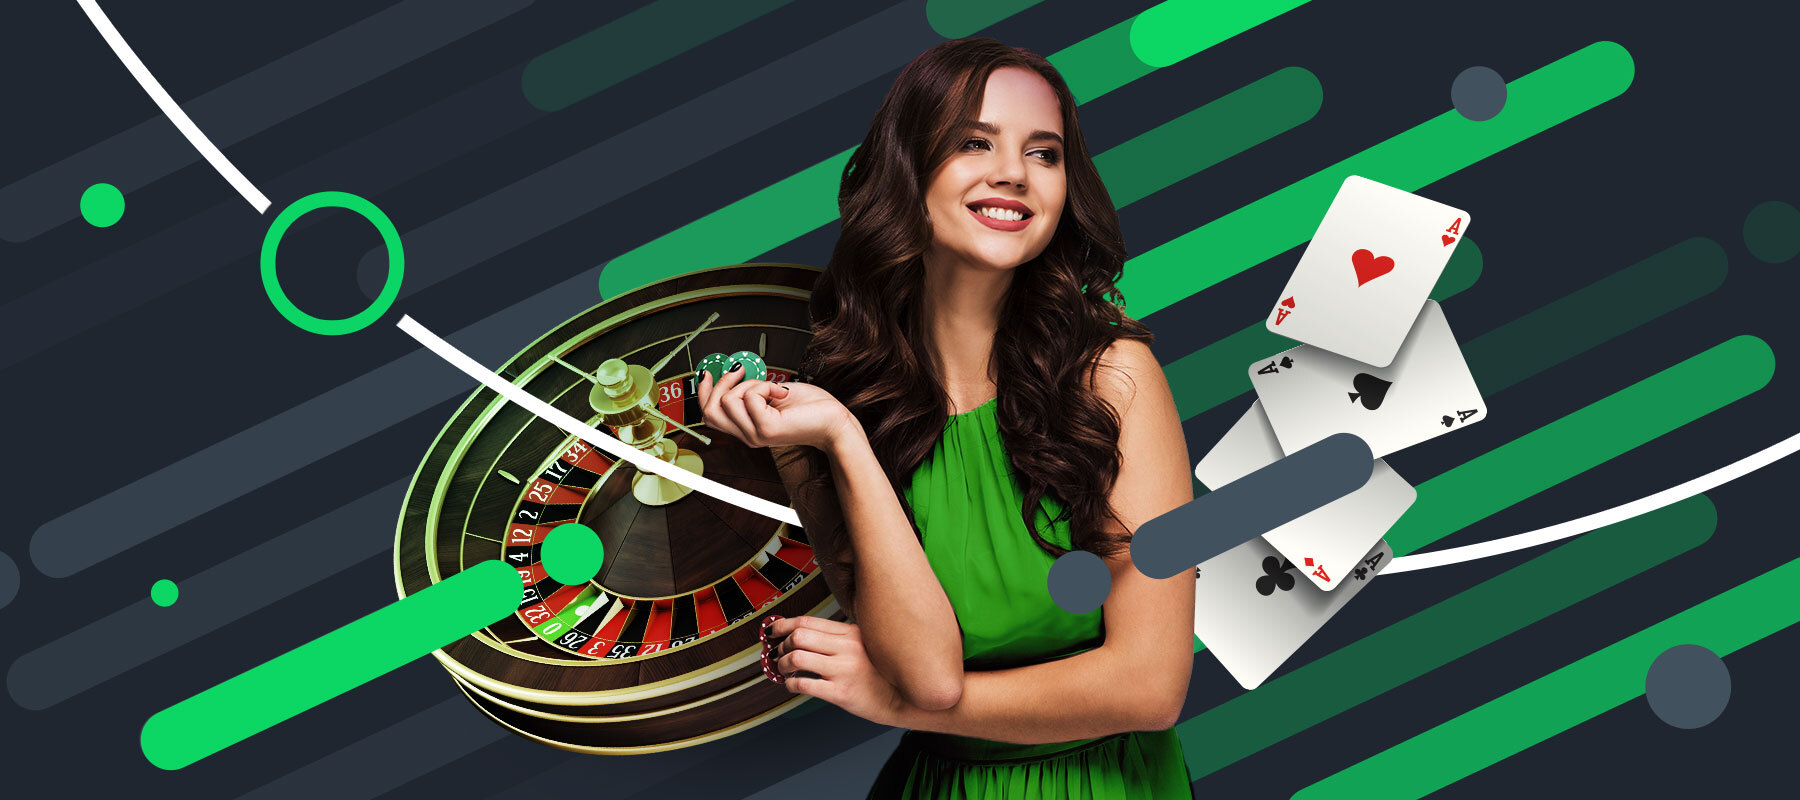 Take A Look At The Advantages Of Online Slots Now